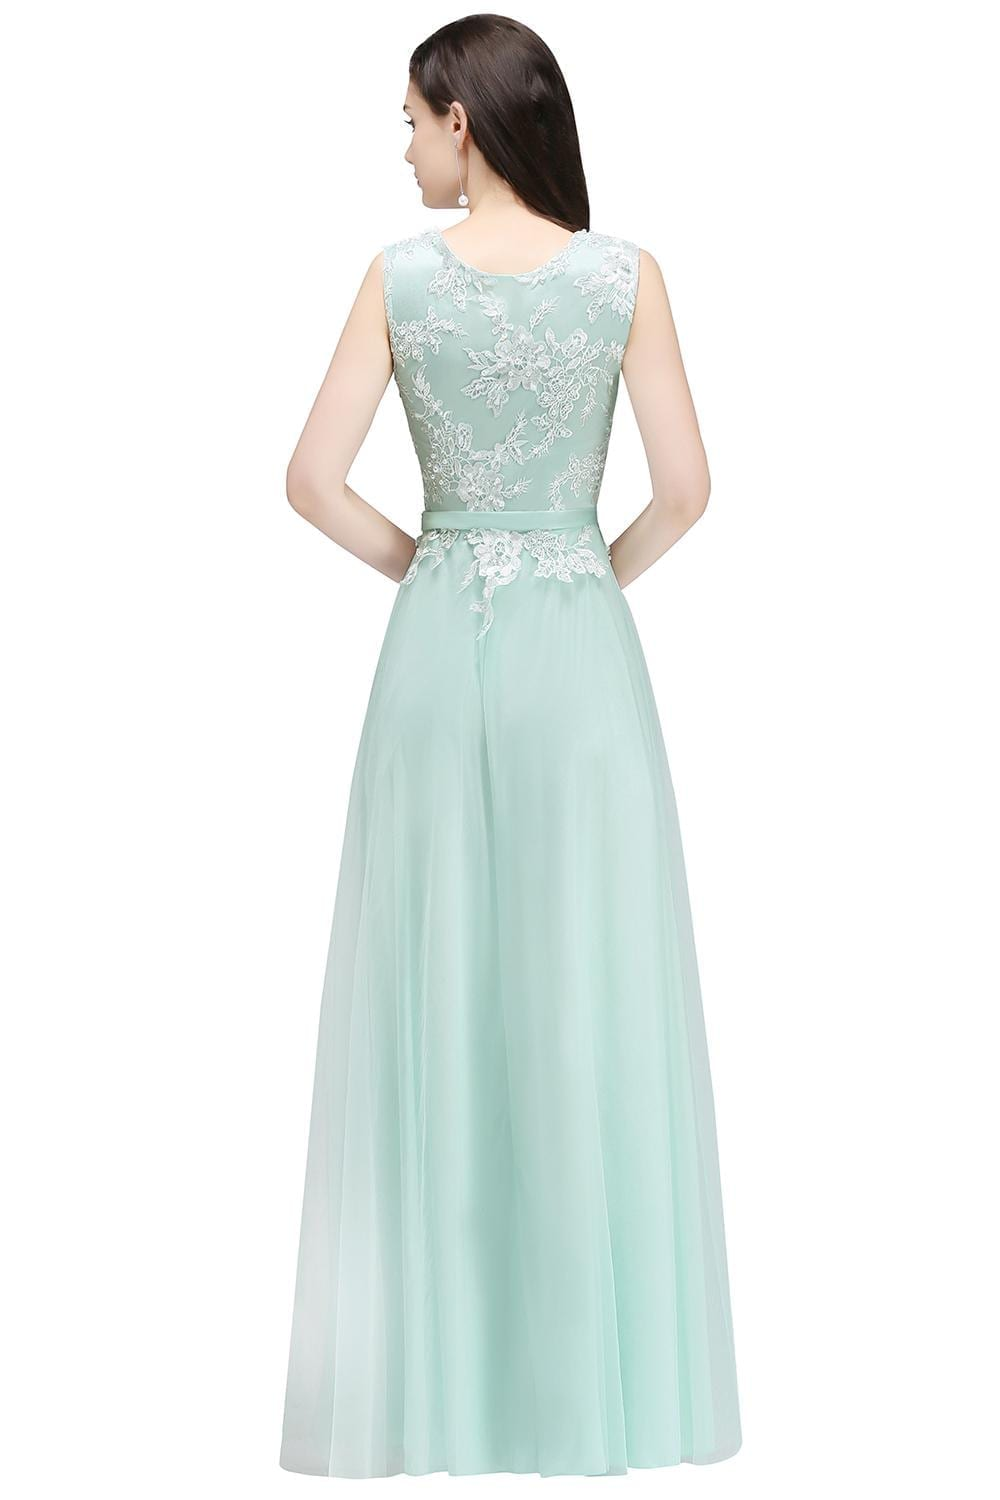 Elegant Mint Green Pink Burgundy Tulle A-line Bridesmaid Dress